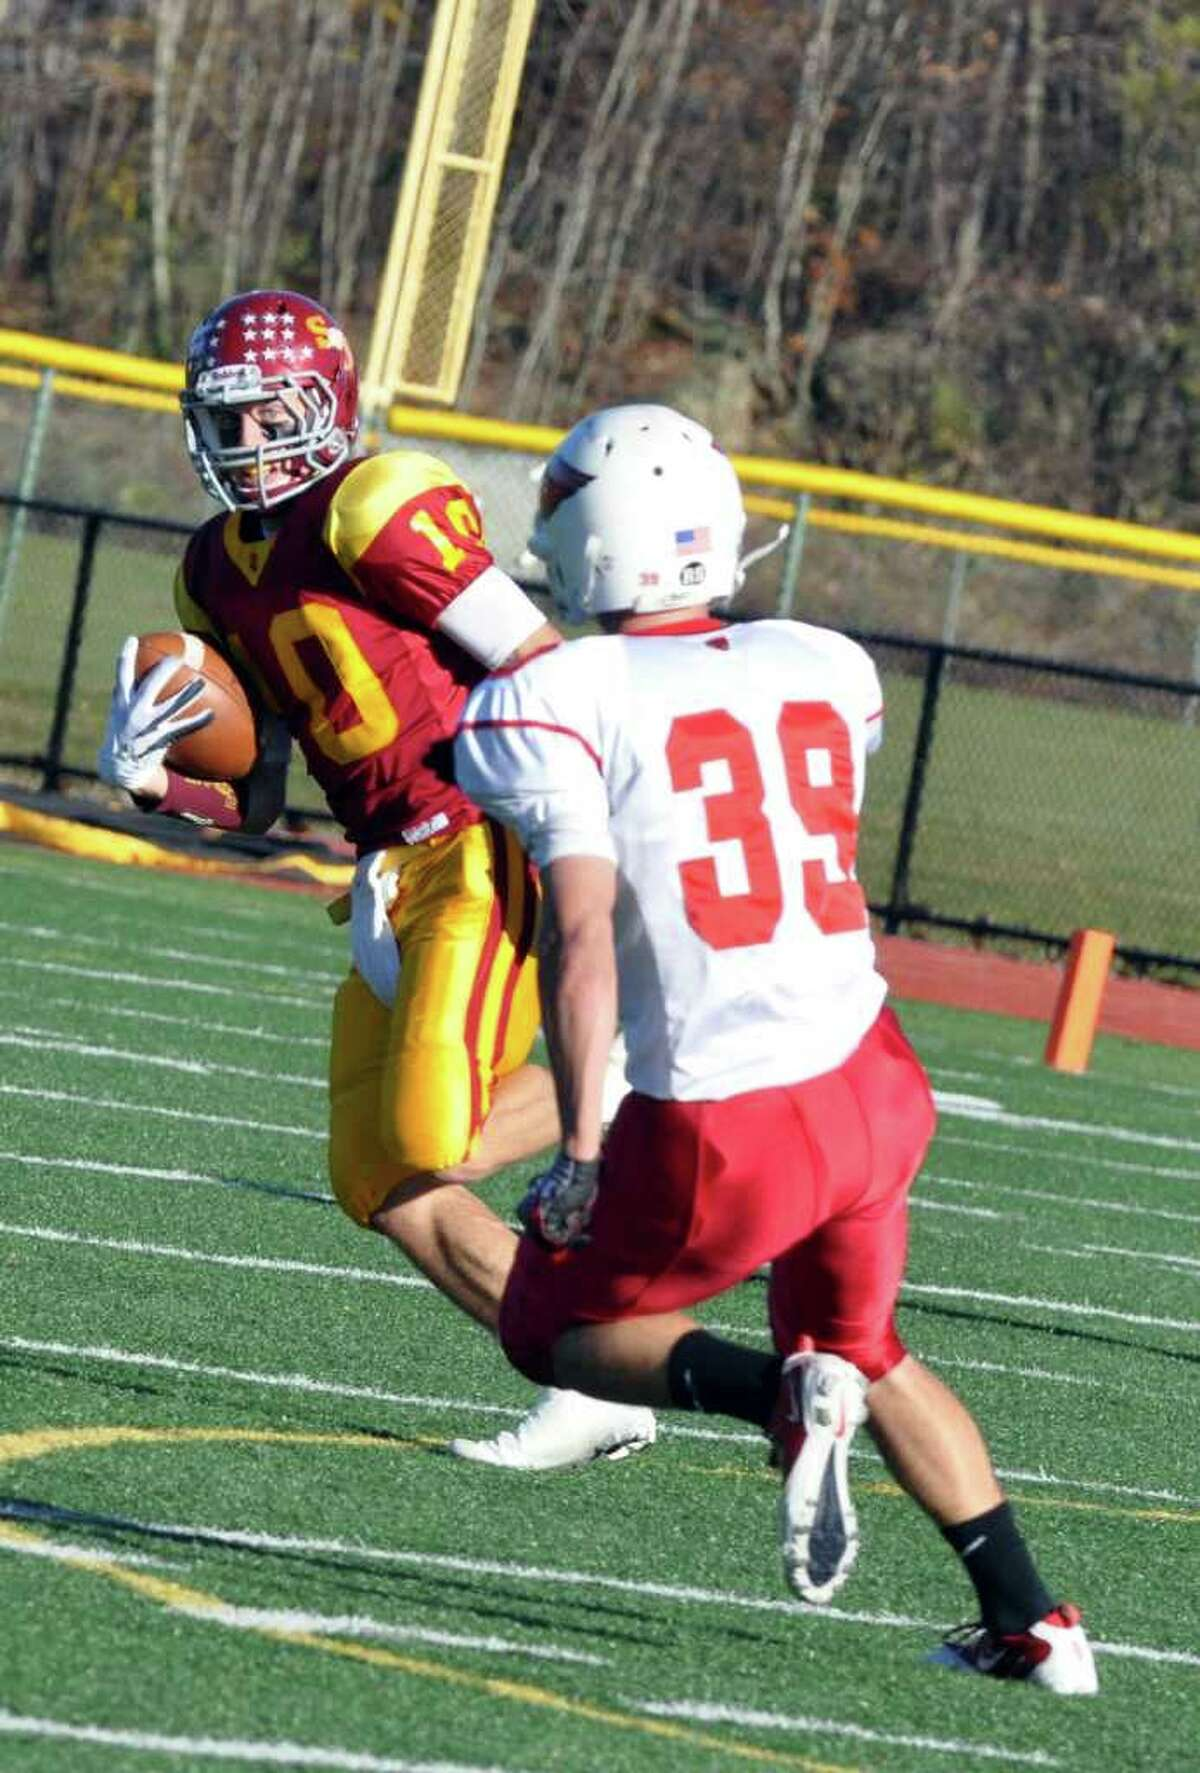 St. Joseph's Pat Mulligan carries an interception as Greenwich's Mike Daly defends during the football game at St. Joseph in Trumbull on Saturday, Nov. 13, 2010.